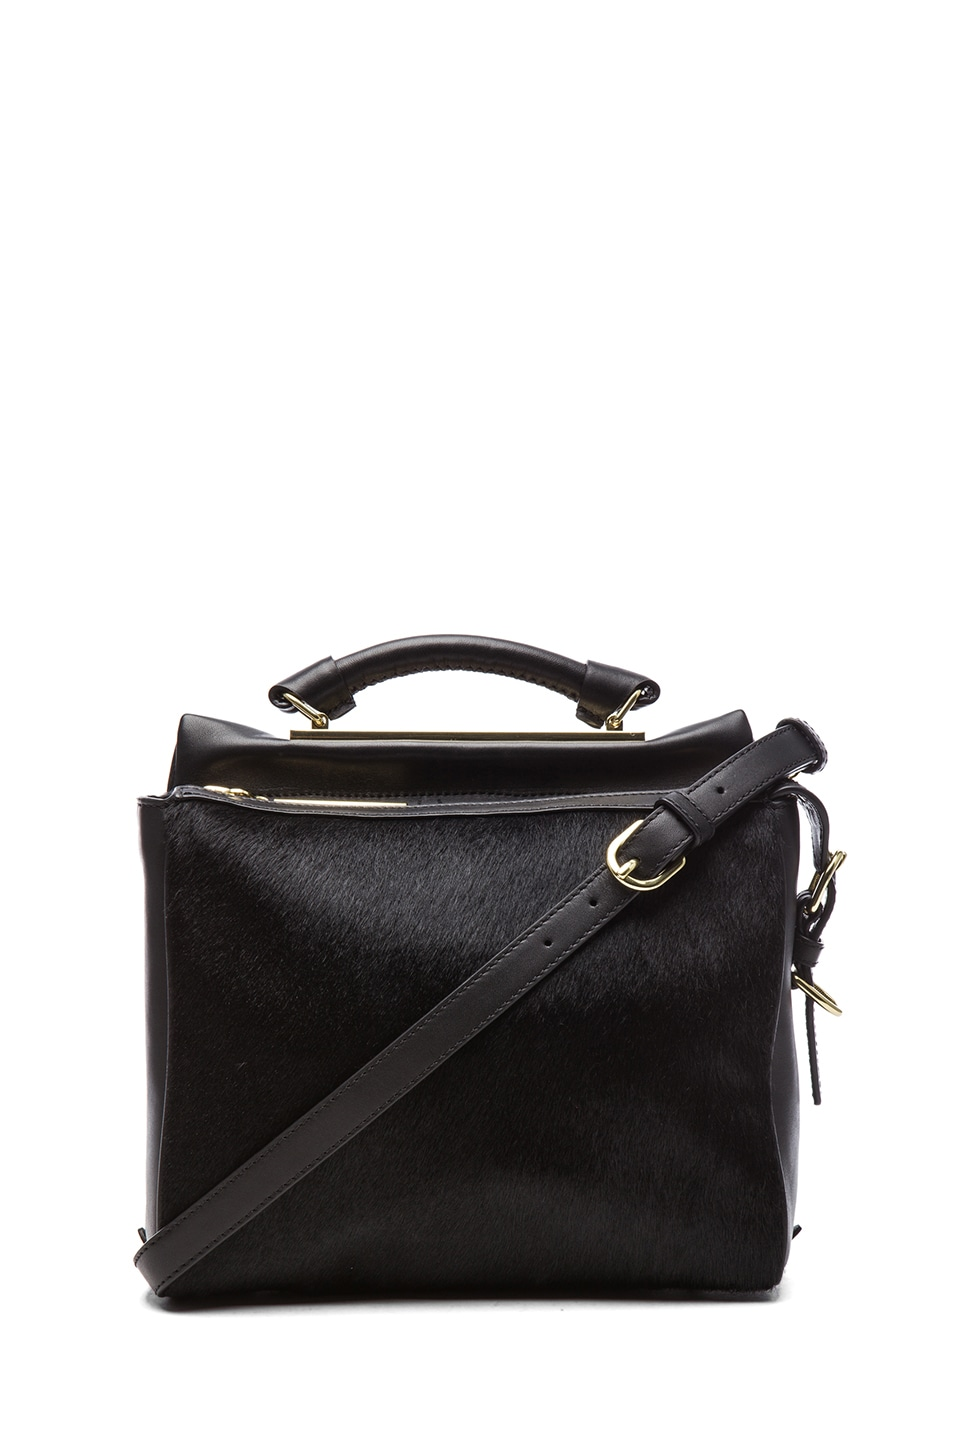 Image 1 of 3.1 phillip lim Small Ryder Satchel in Black